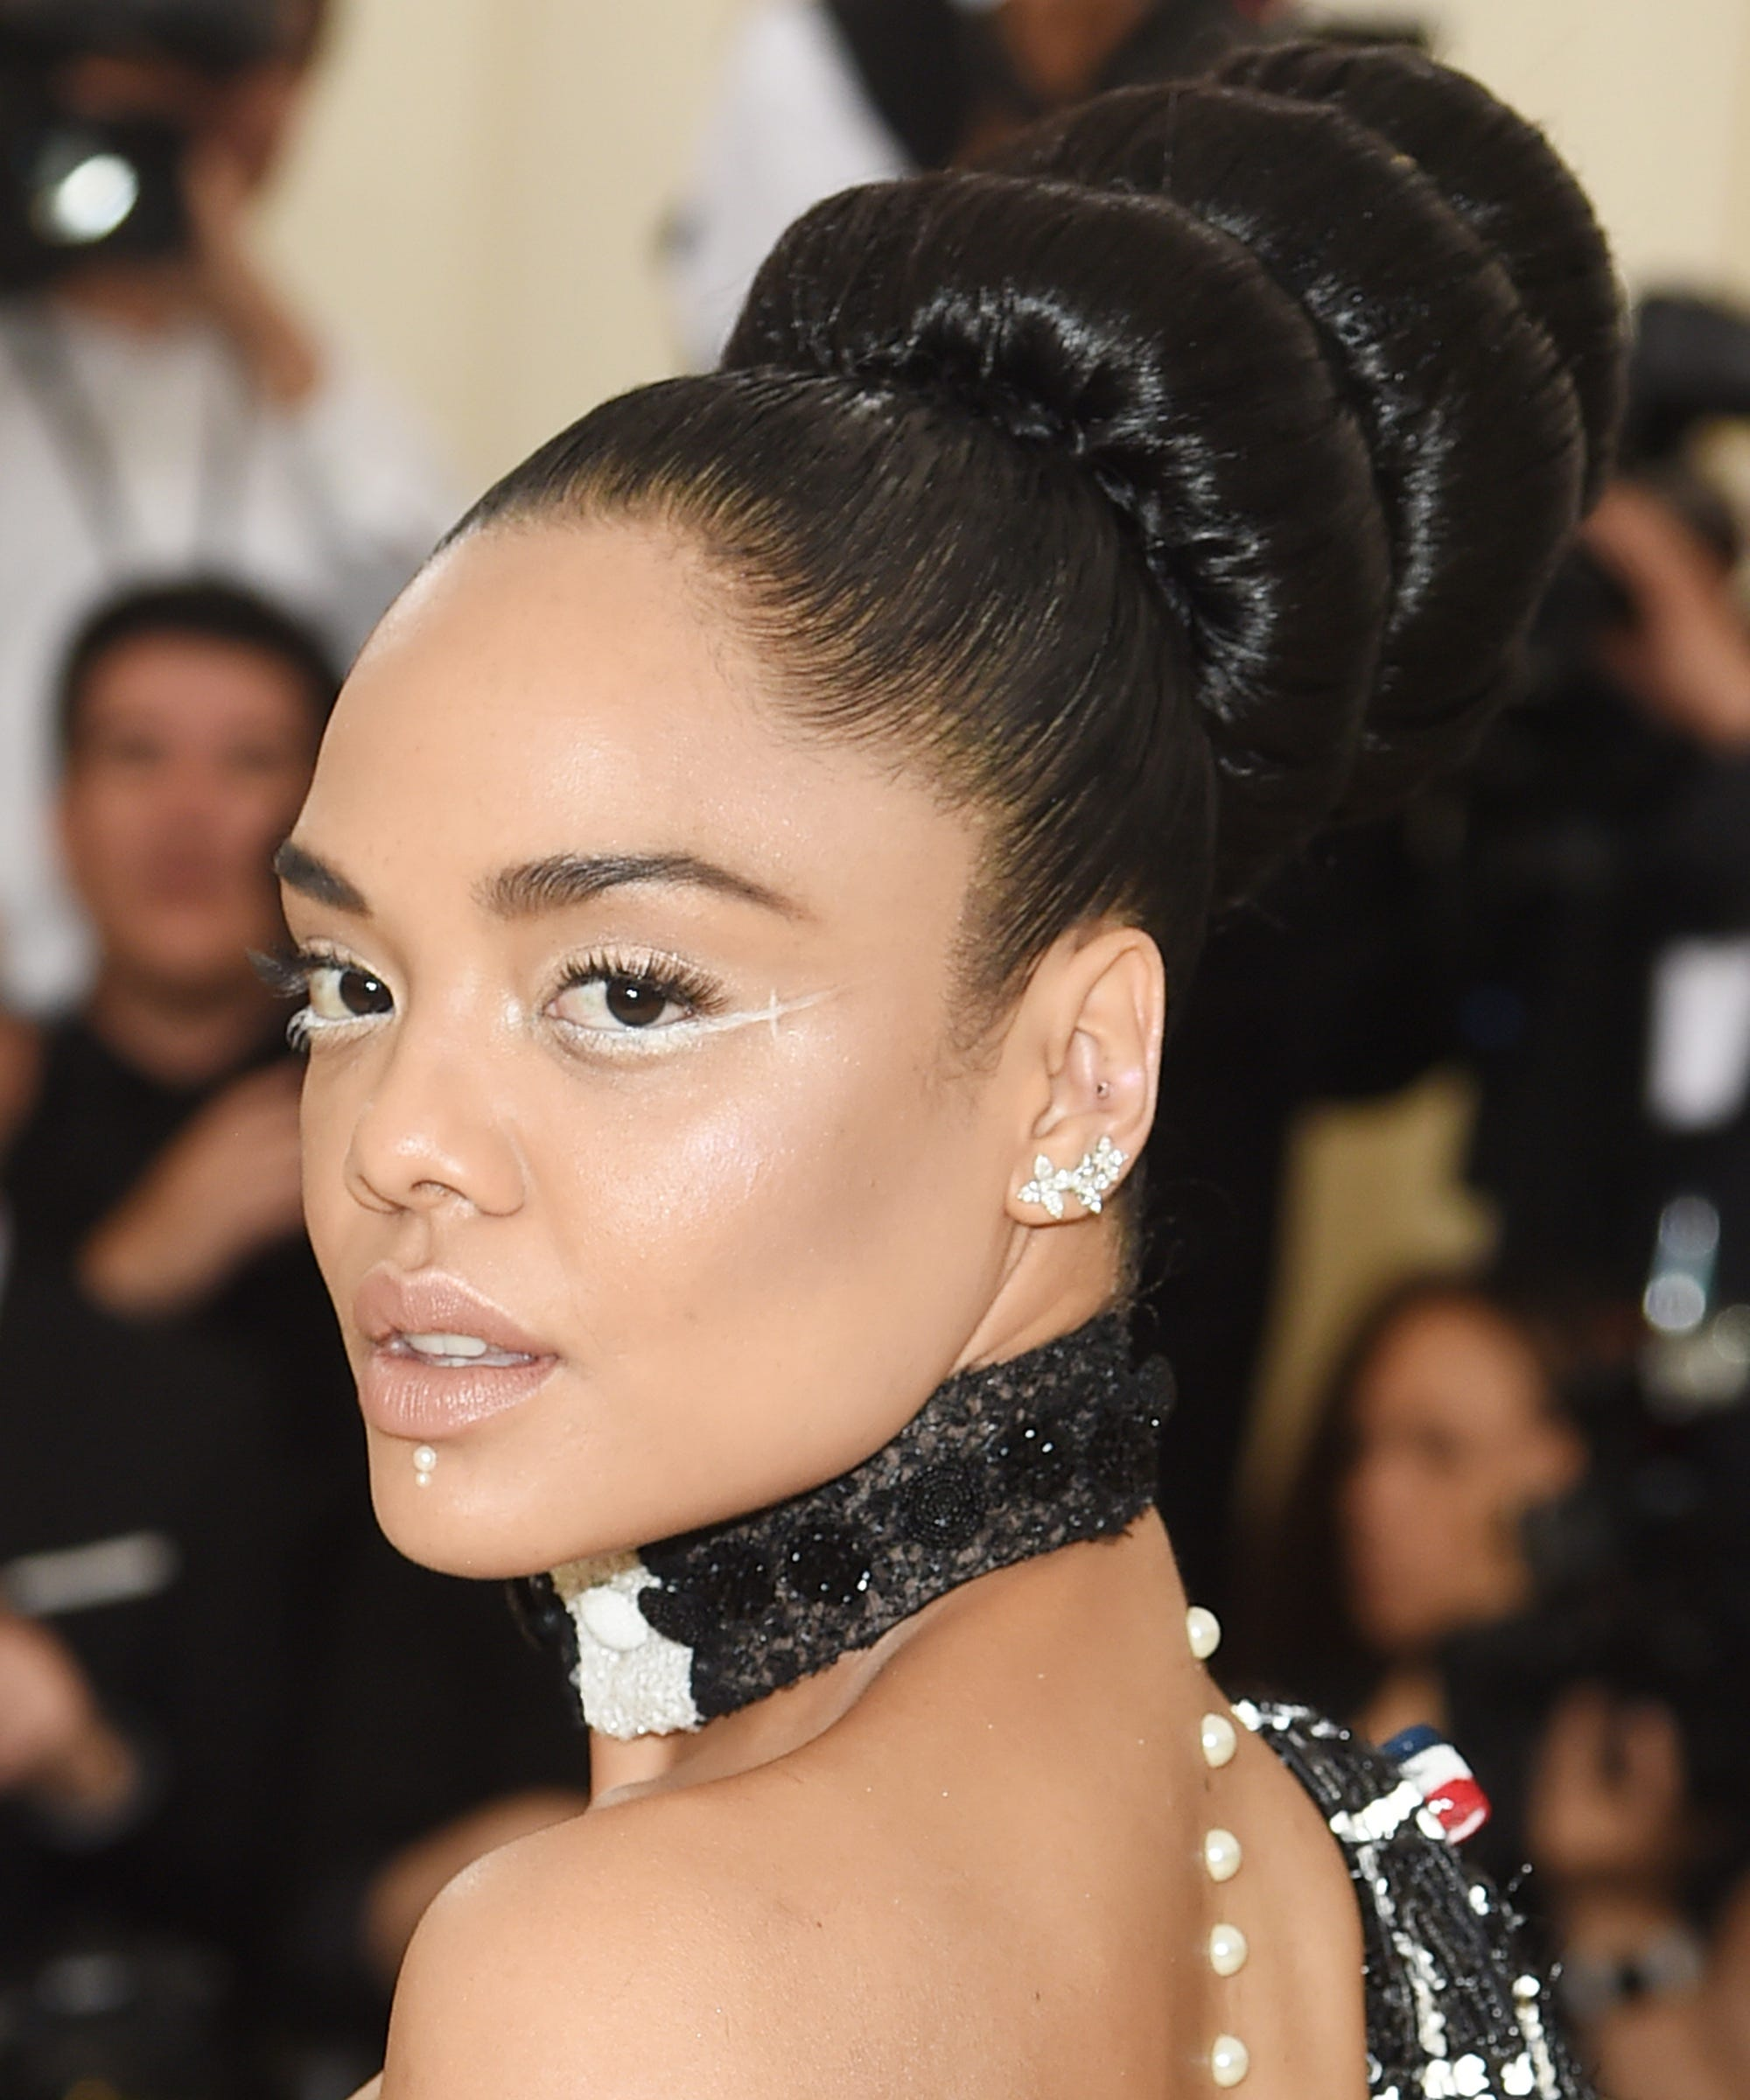 White Eyeliner Is The Biggest Celebrity Makeup Trend Of 2019